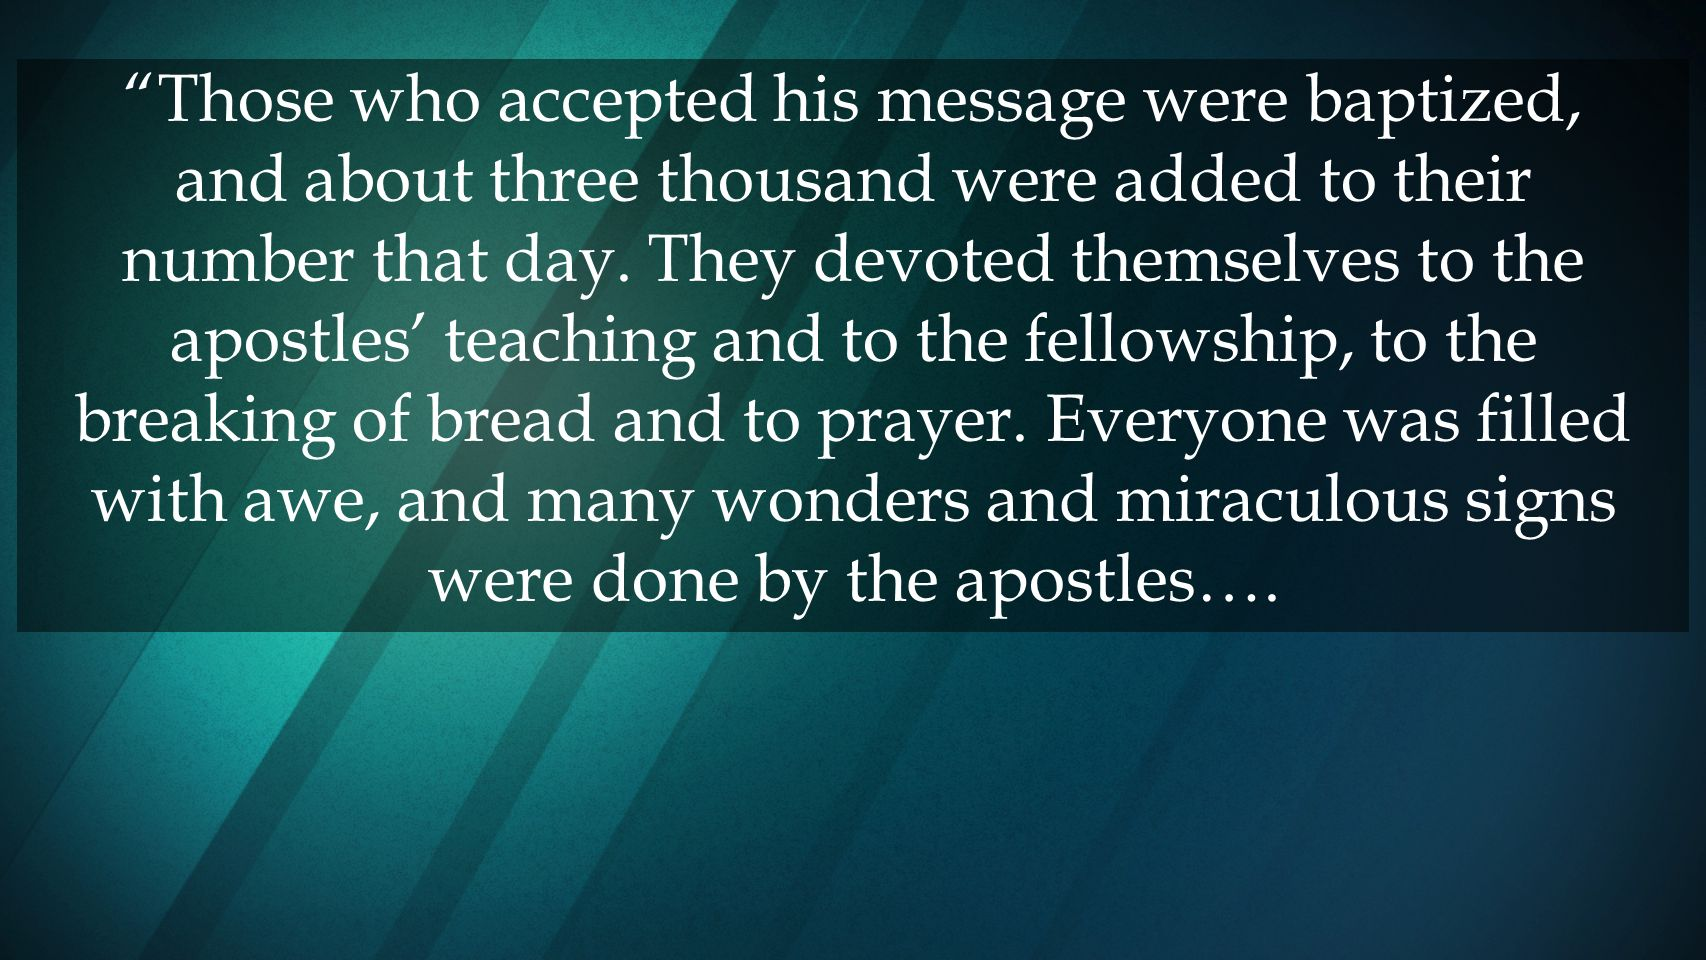 Those who accepted his message were baptized, and about three thousand were added to their number that day.